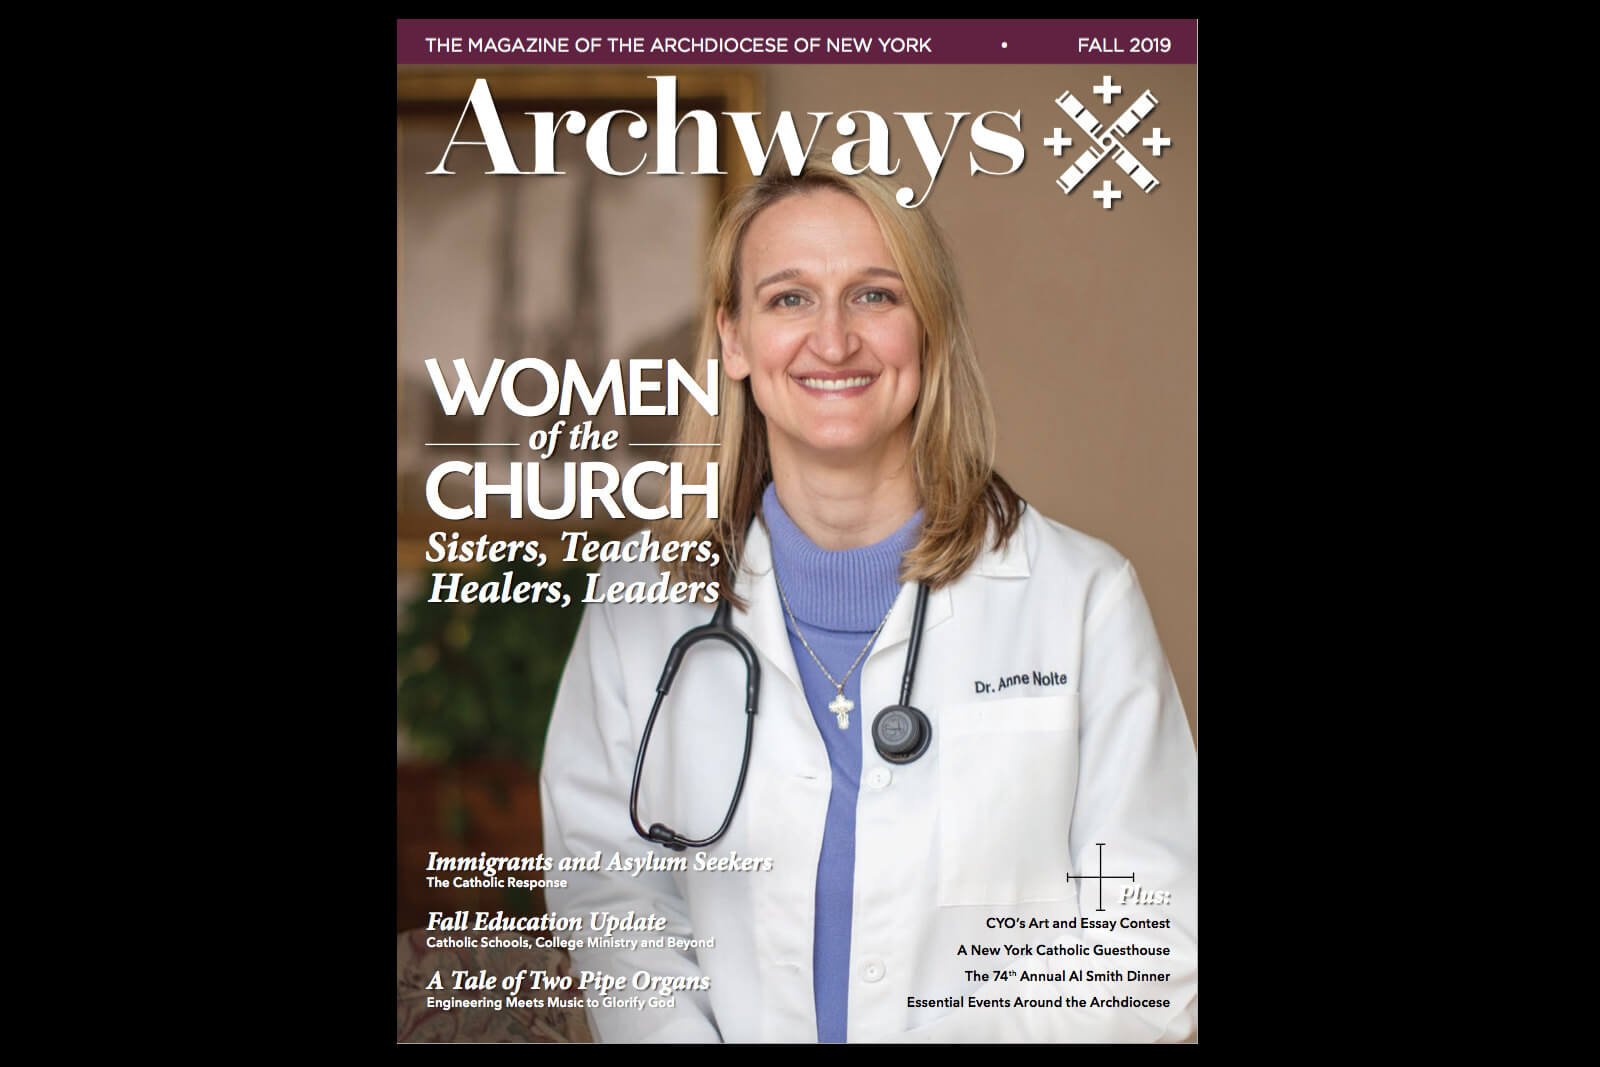 Cover or Archways Magazine Fall 2019